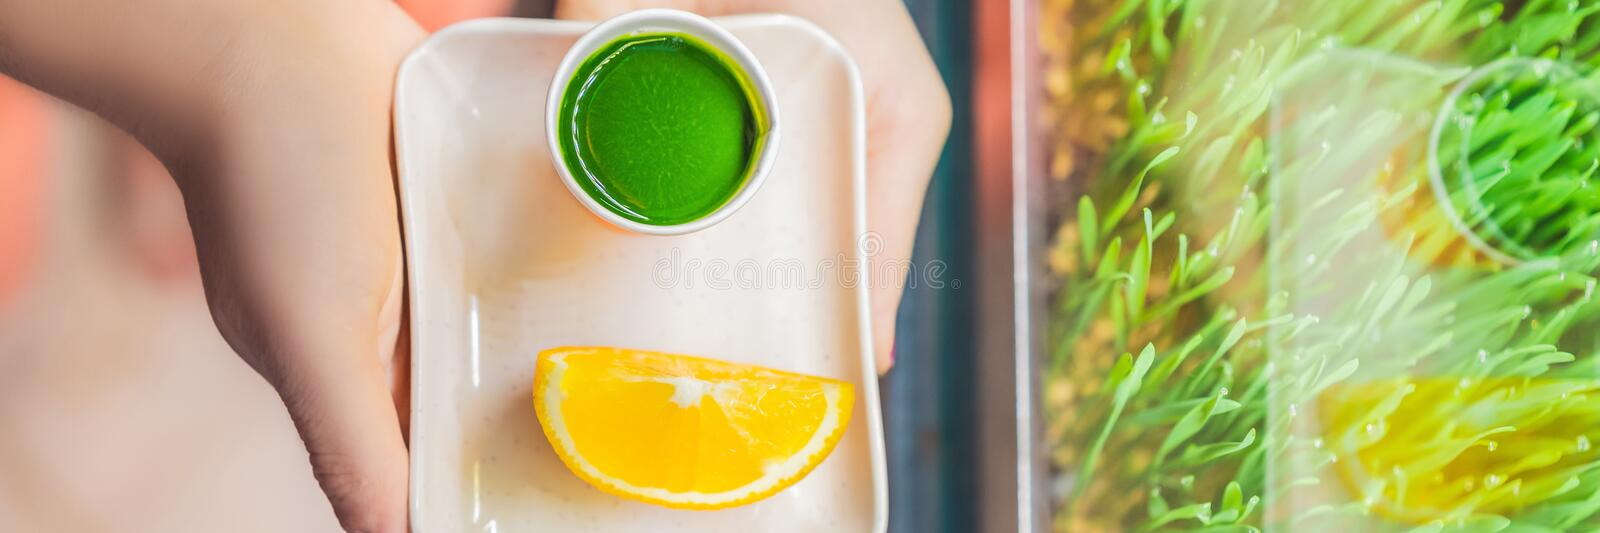 Wheatgrass shot. Juice from wheat grass. Trend of health. wheat grass BANNER, LONG FORMAT royalty free stock image